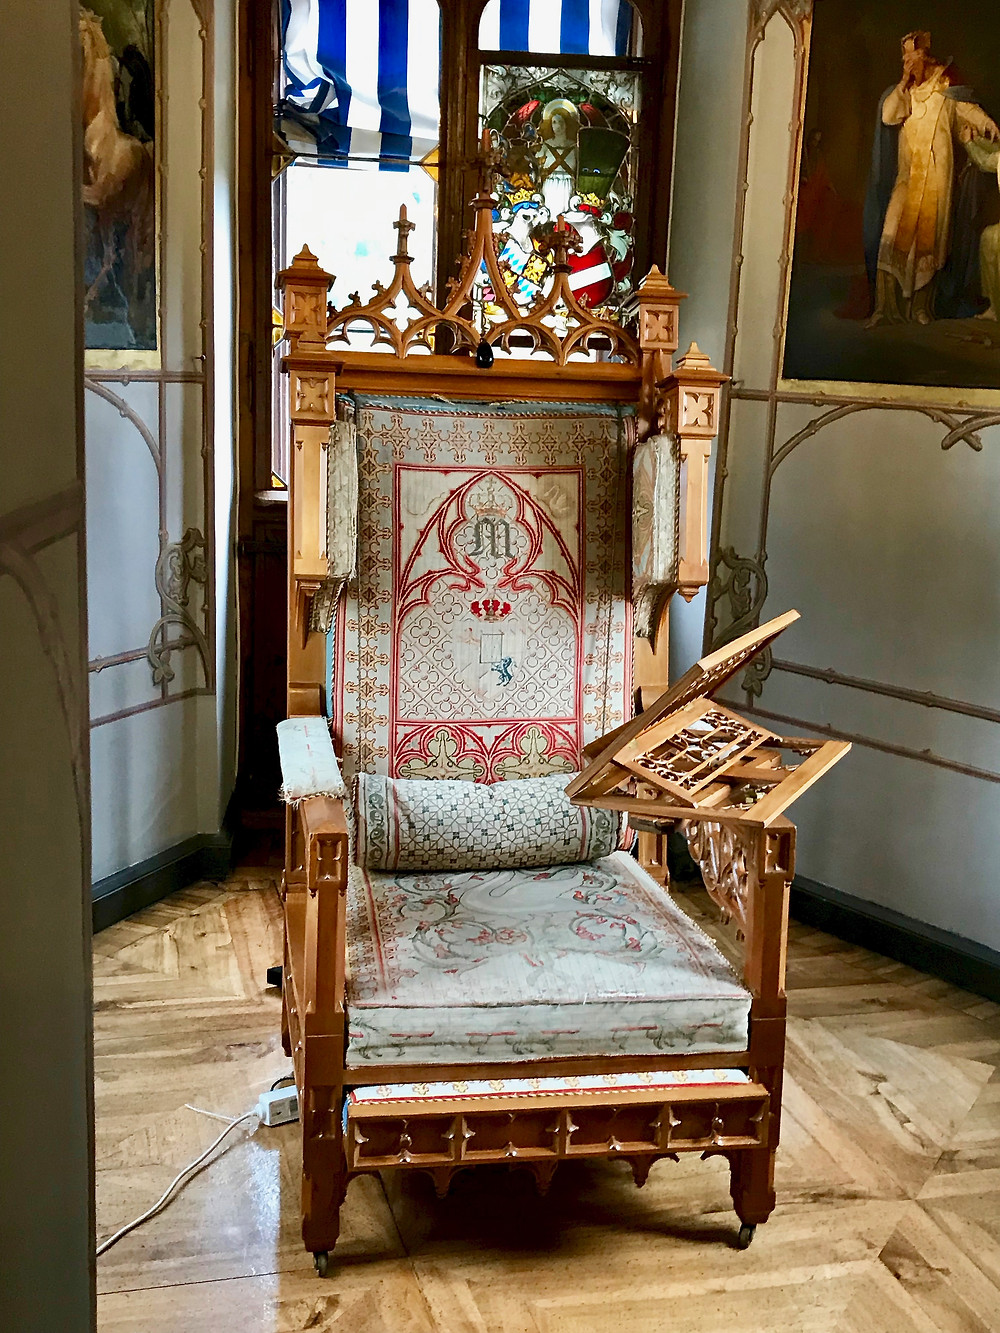 Ludwig's reading chair